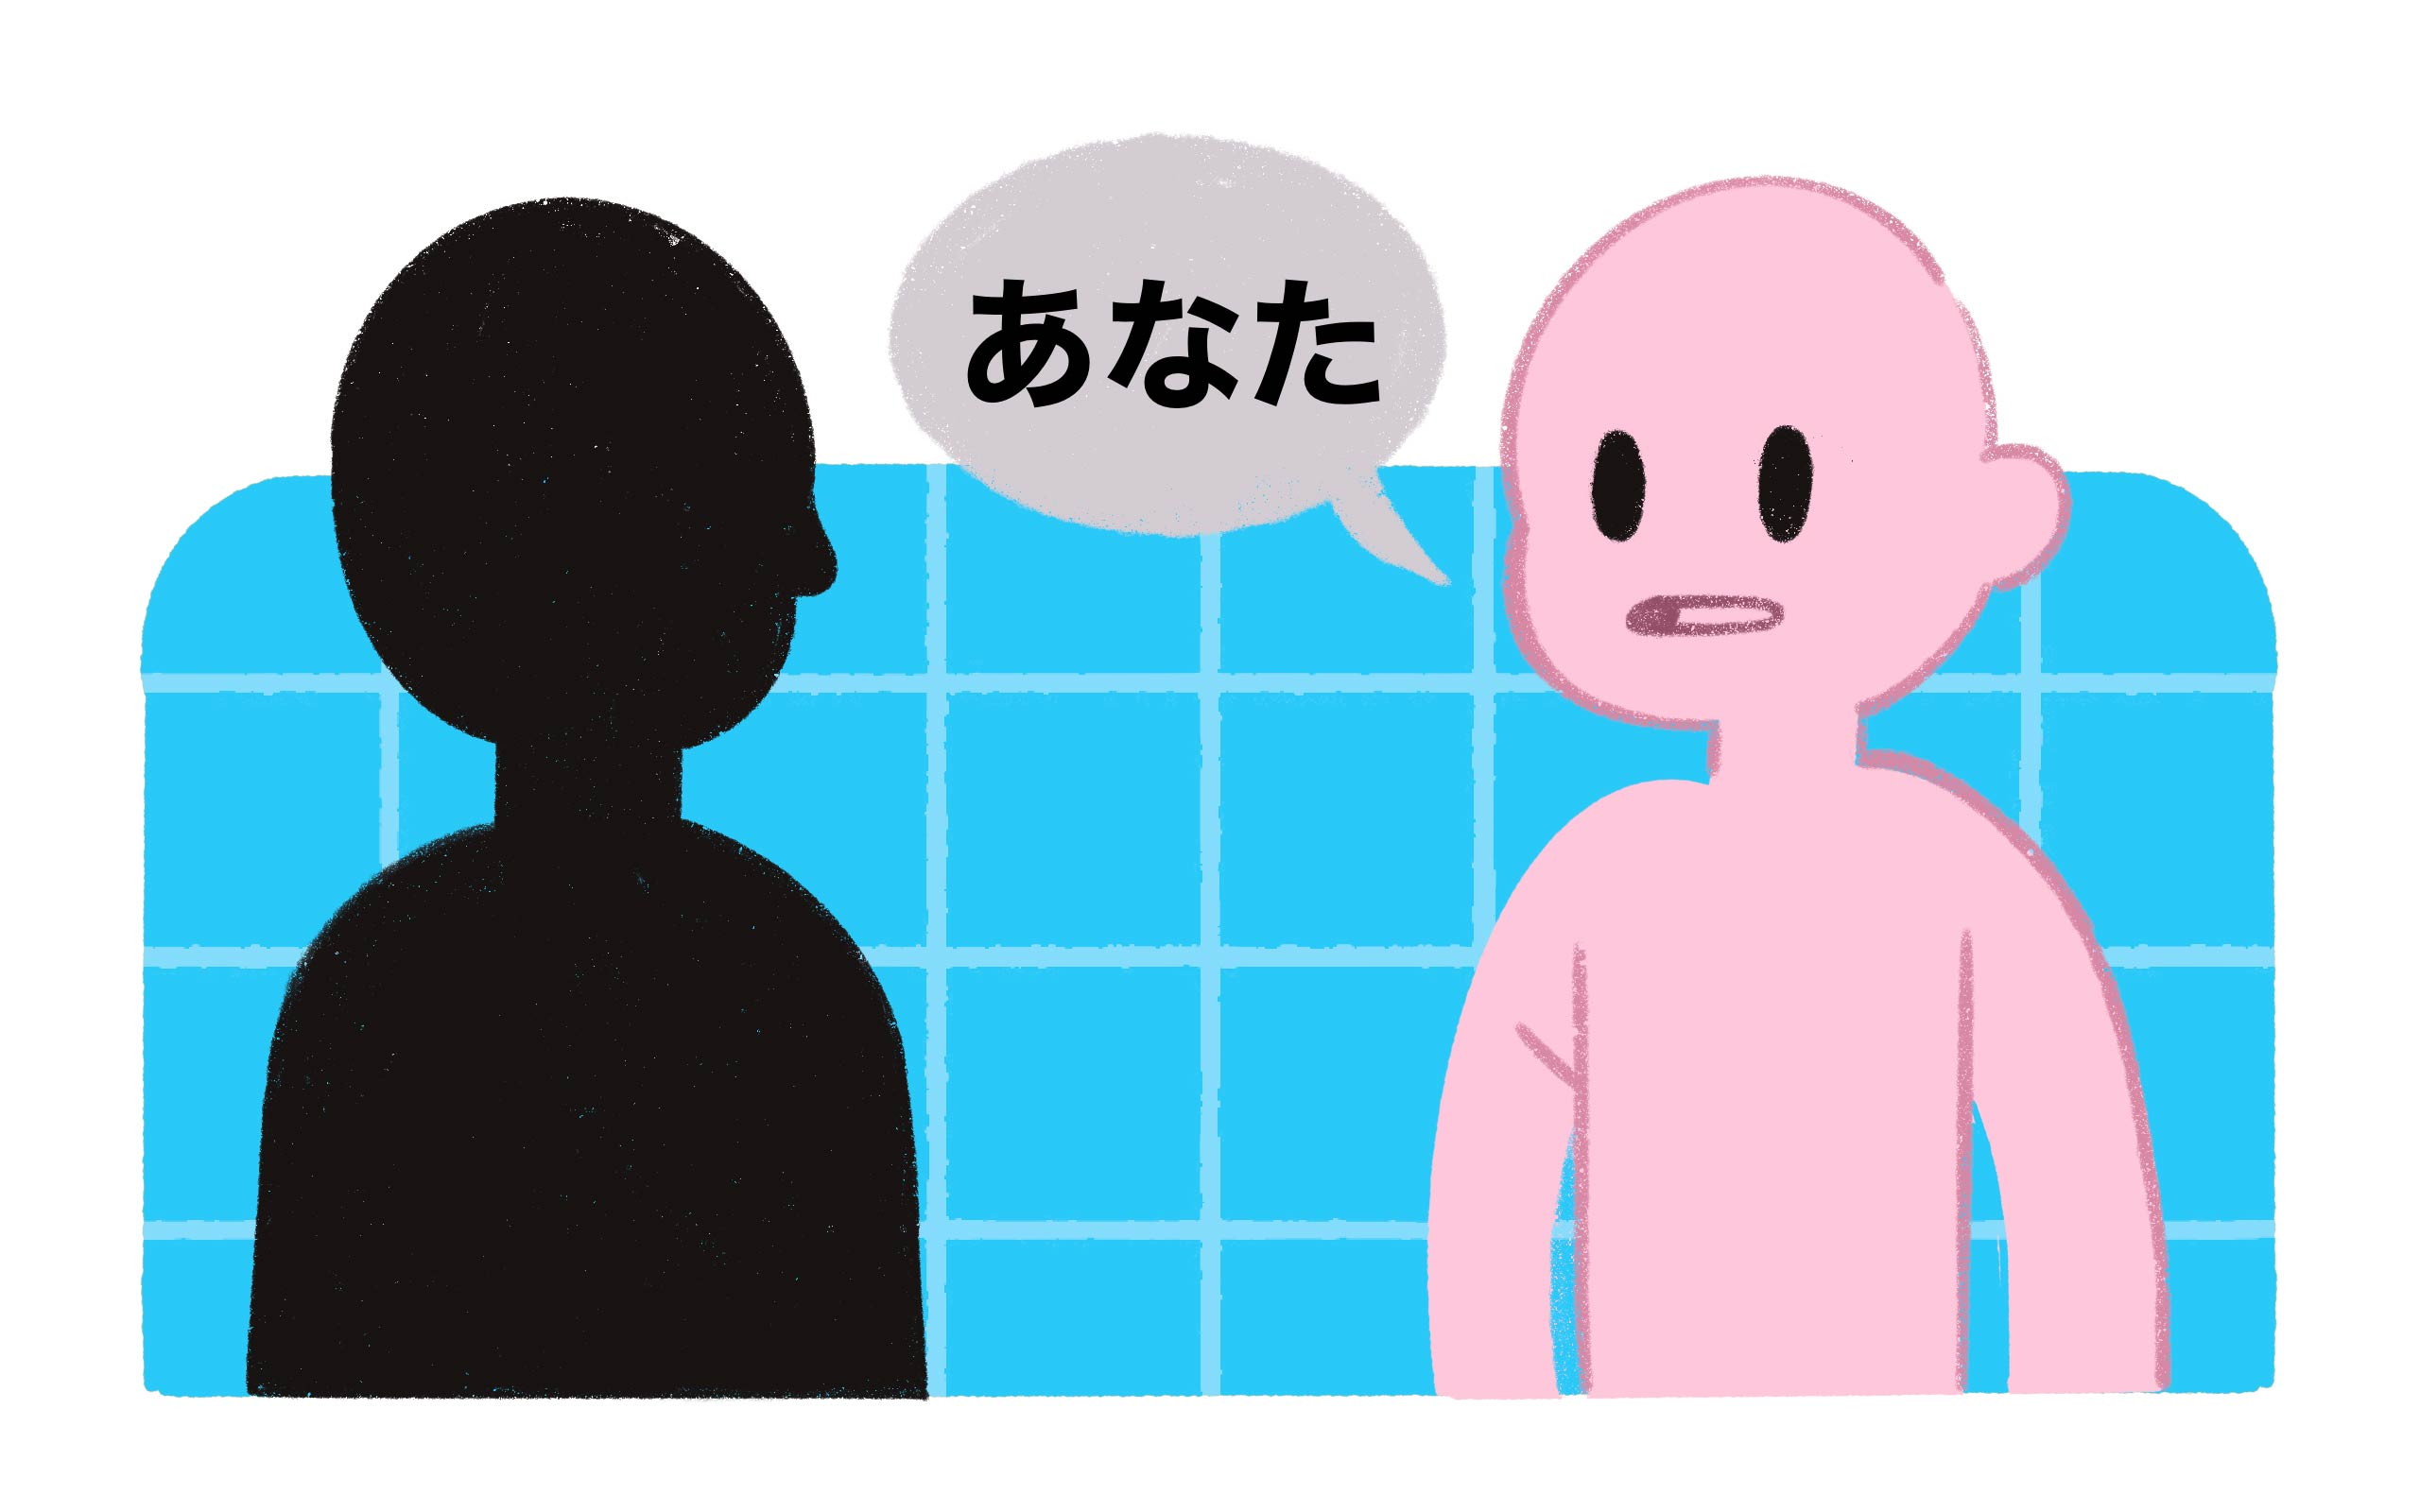 a person with a neutral facial impression saying あなた